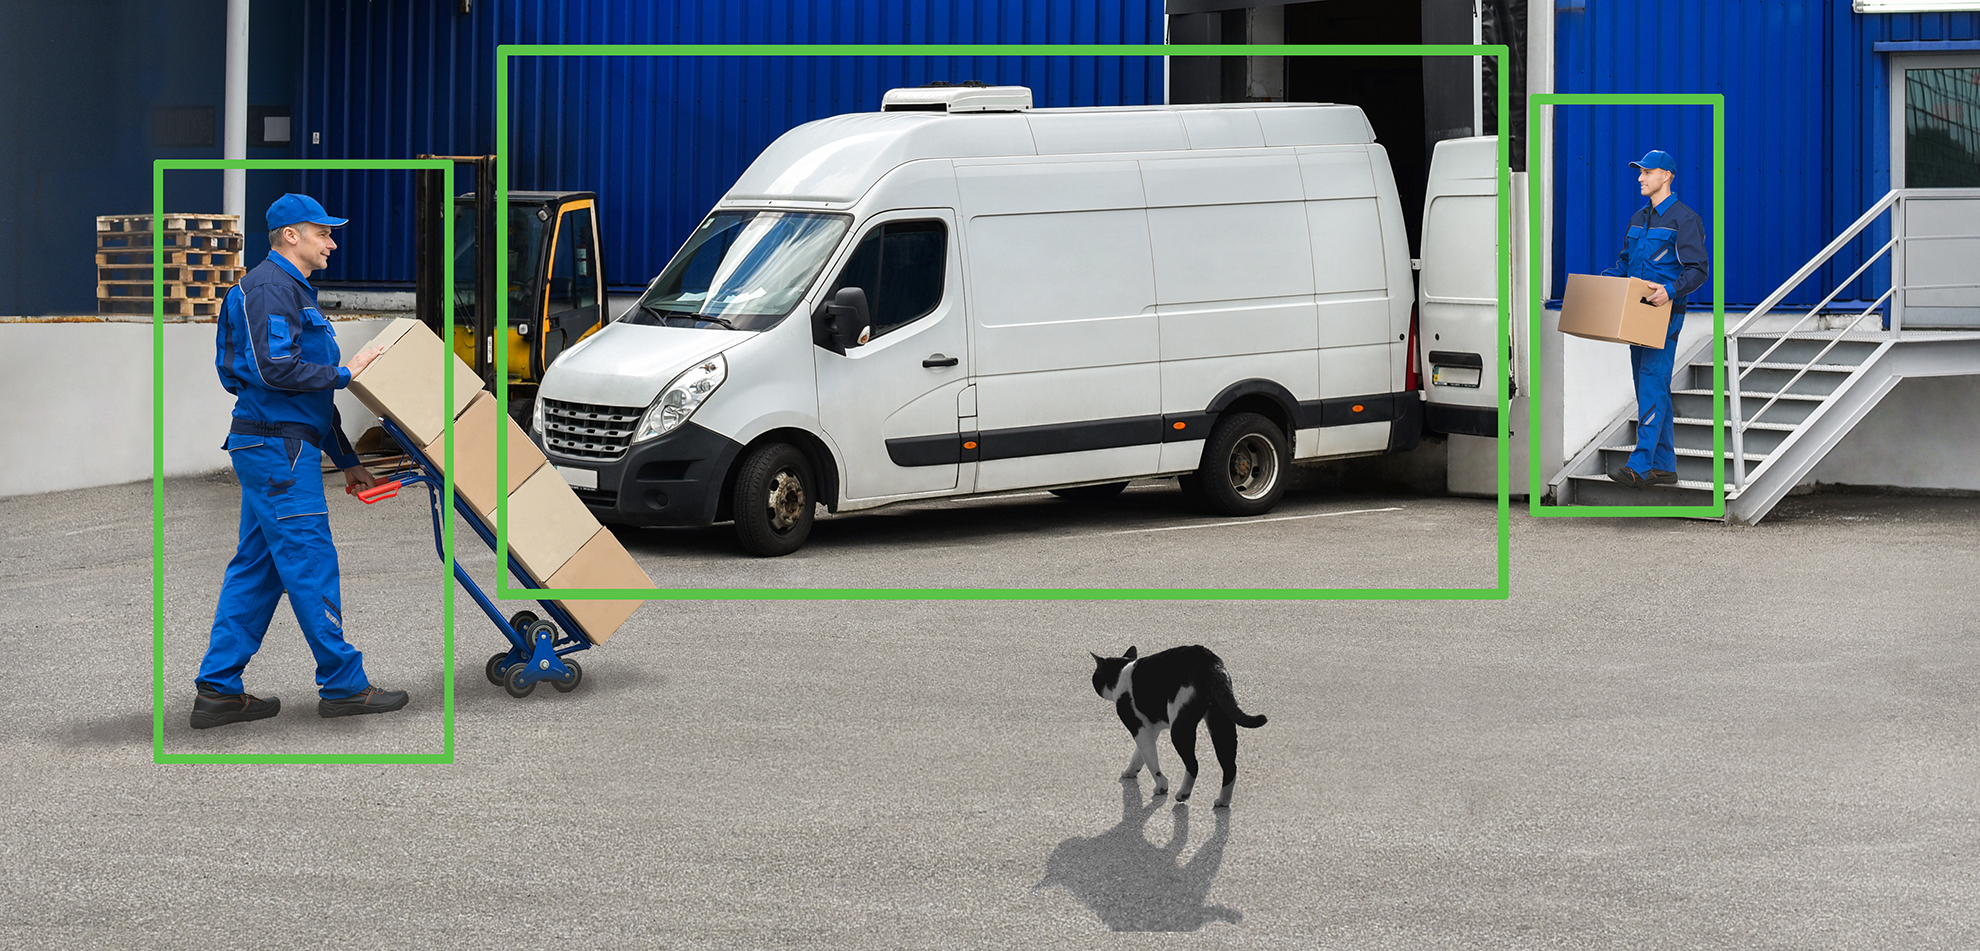 How Smart Motion Detection Works